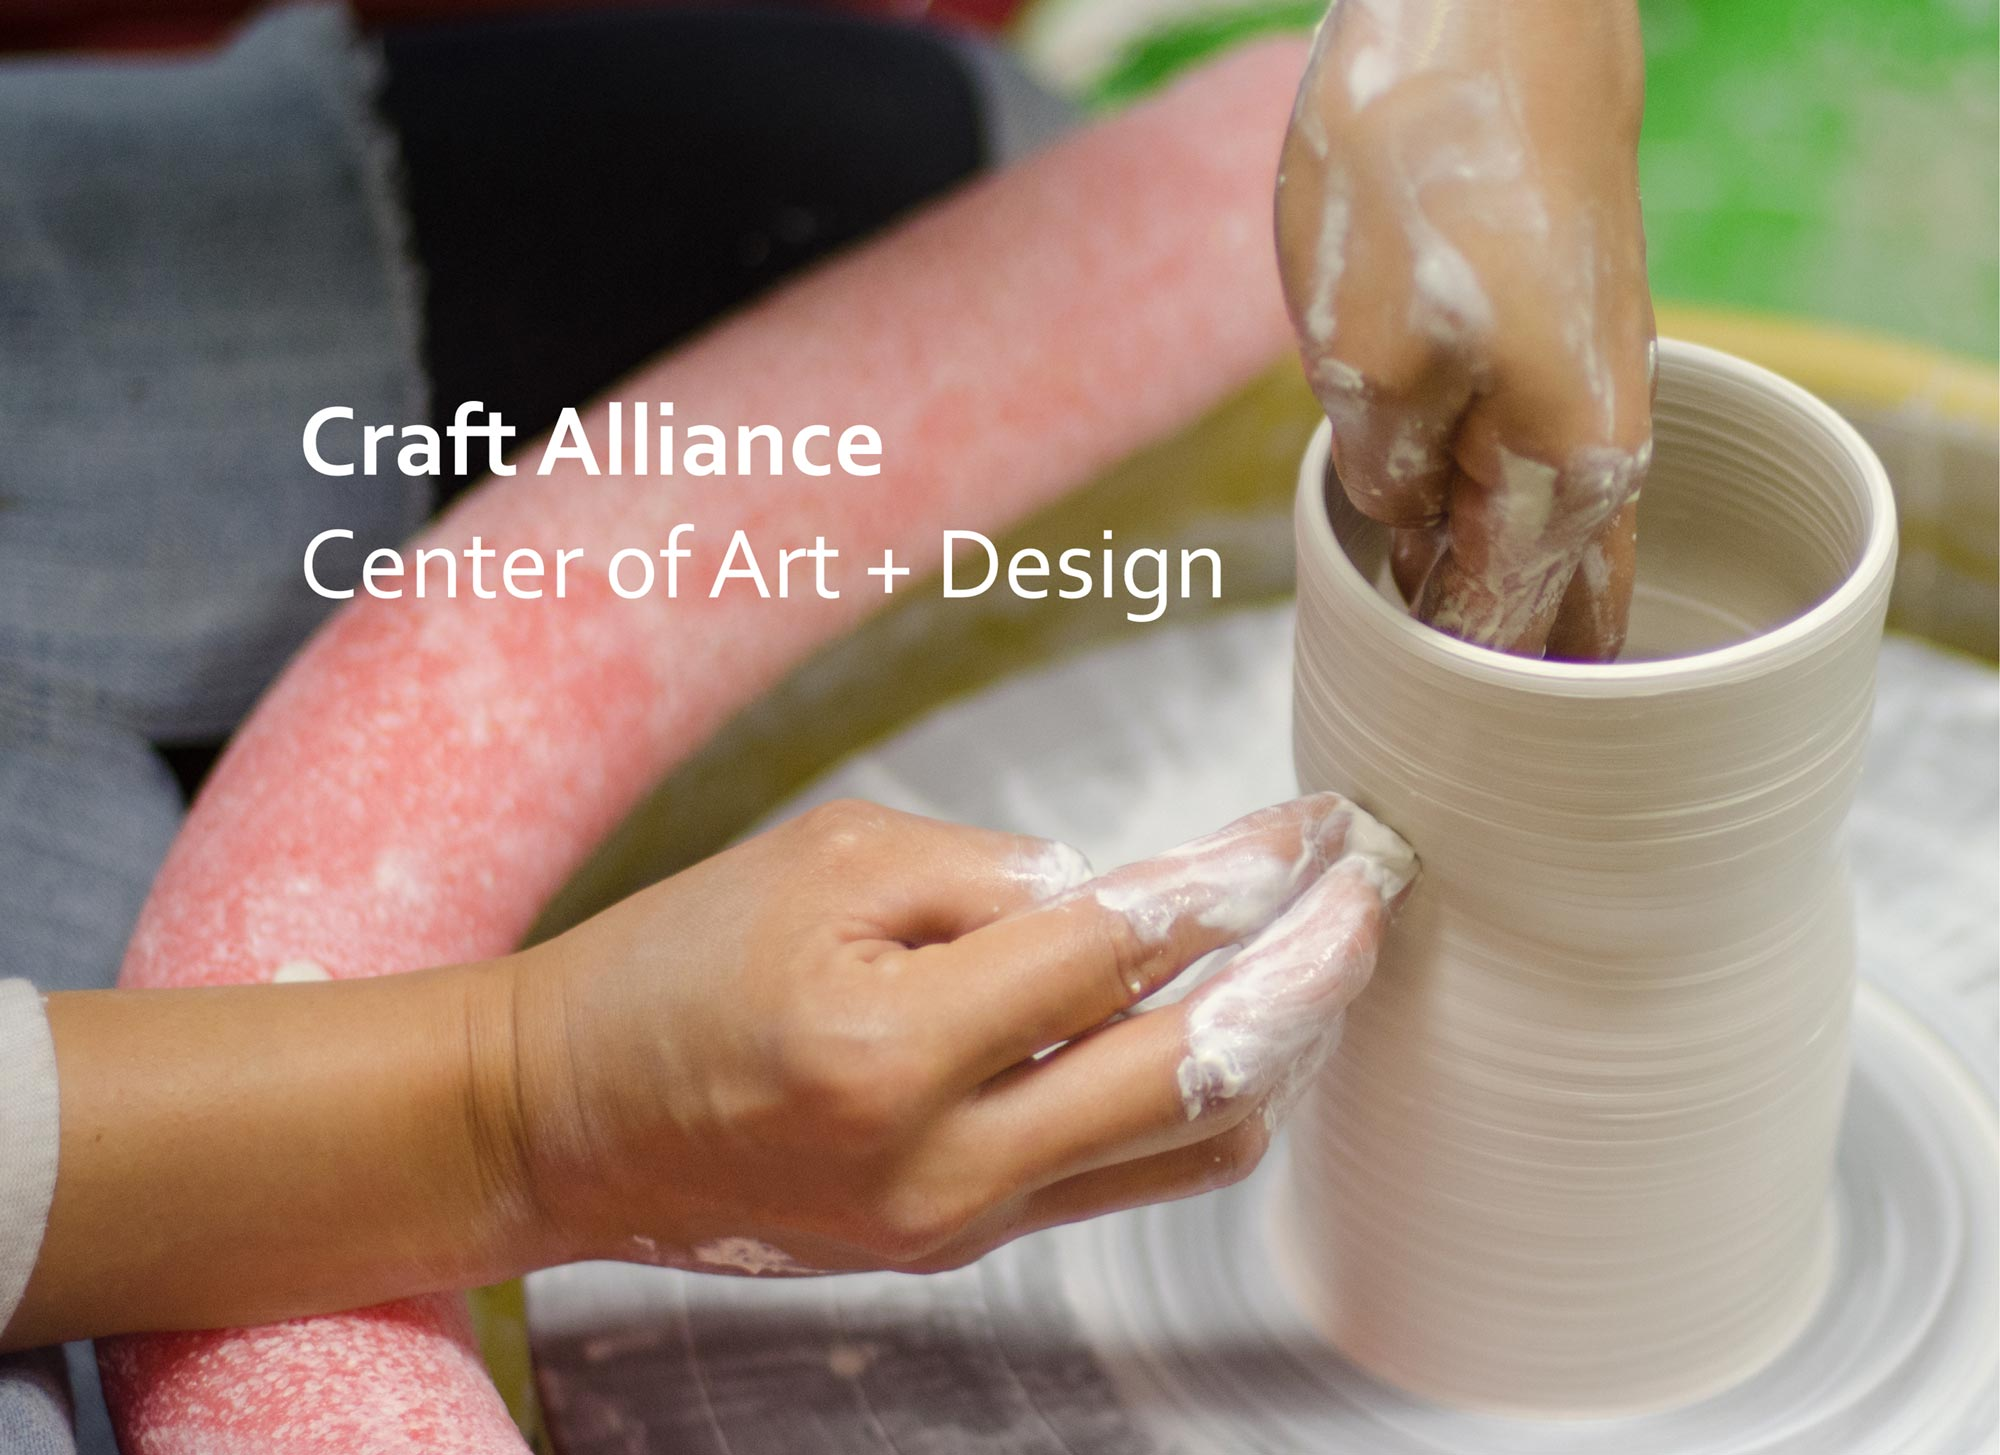 Studiopowell and Craft Alliance Center of Art + Design branding and creative direction